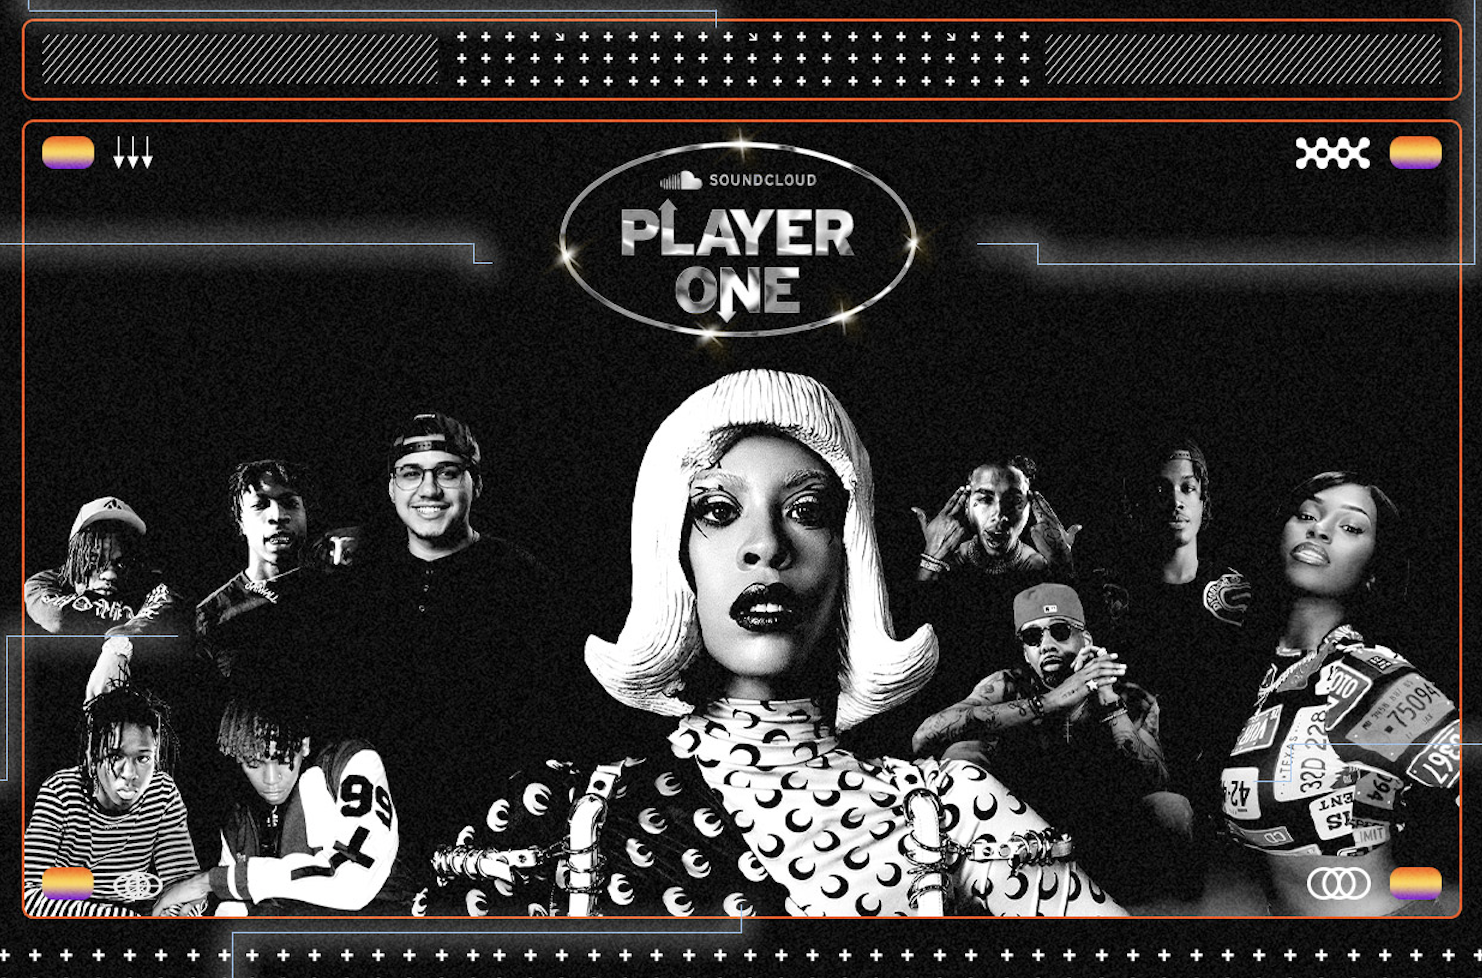 SoundCloud's New Gaming Tournamnet SoundCloud Player One Goes Down Feb.18